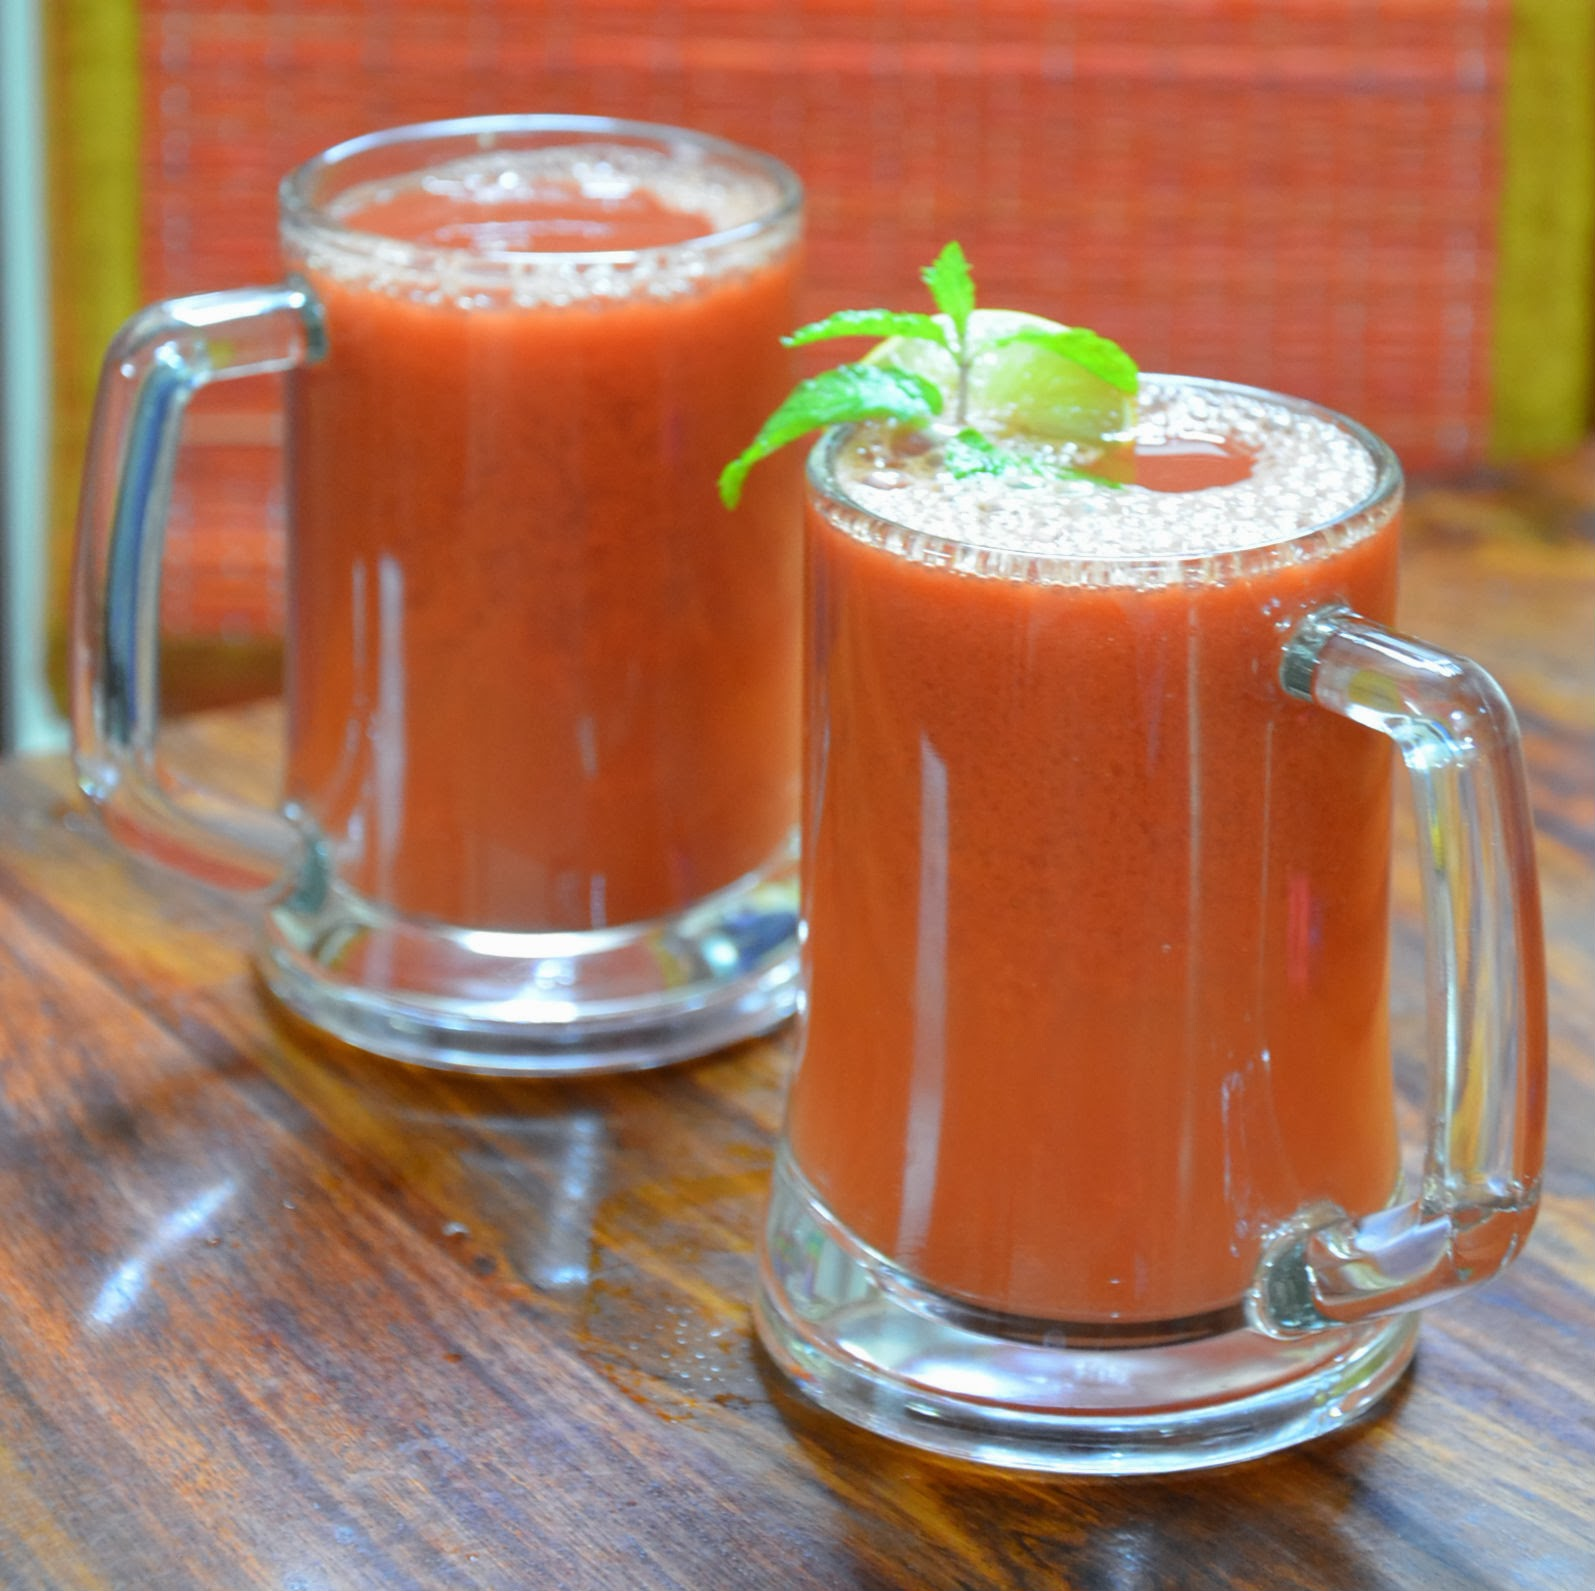 watermelon juice, summer drinks, indian sherbat, watermelon drink, fruit punch, mocktail